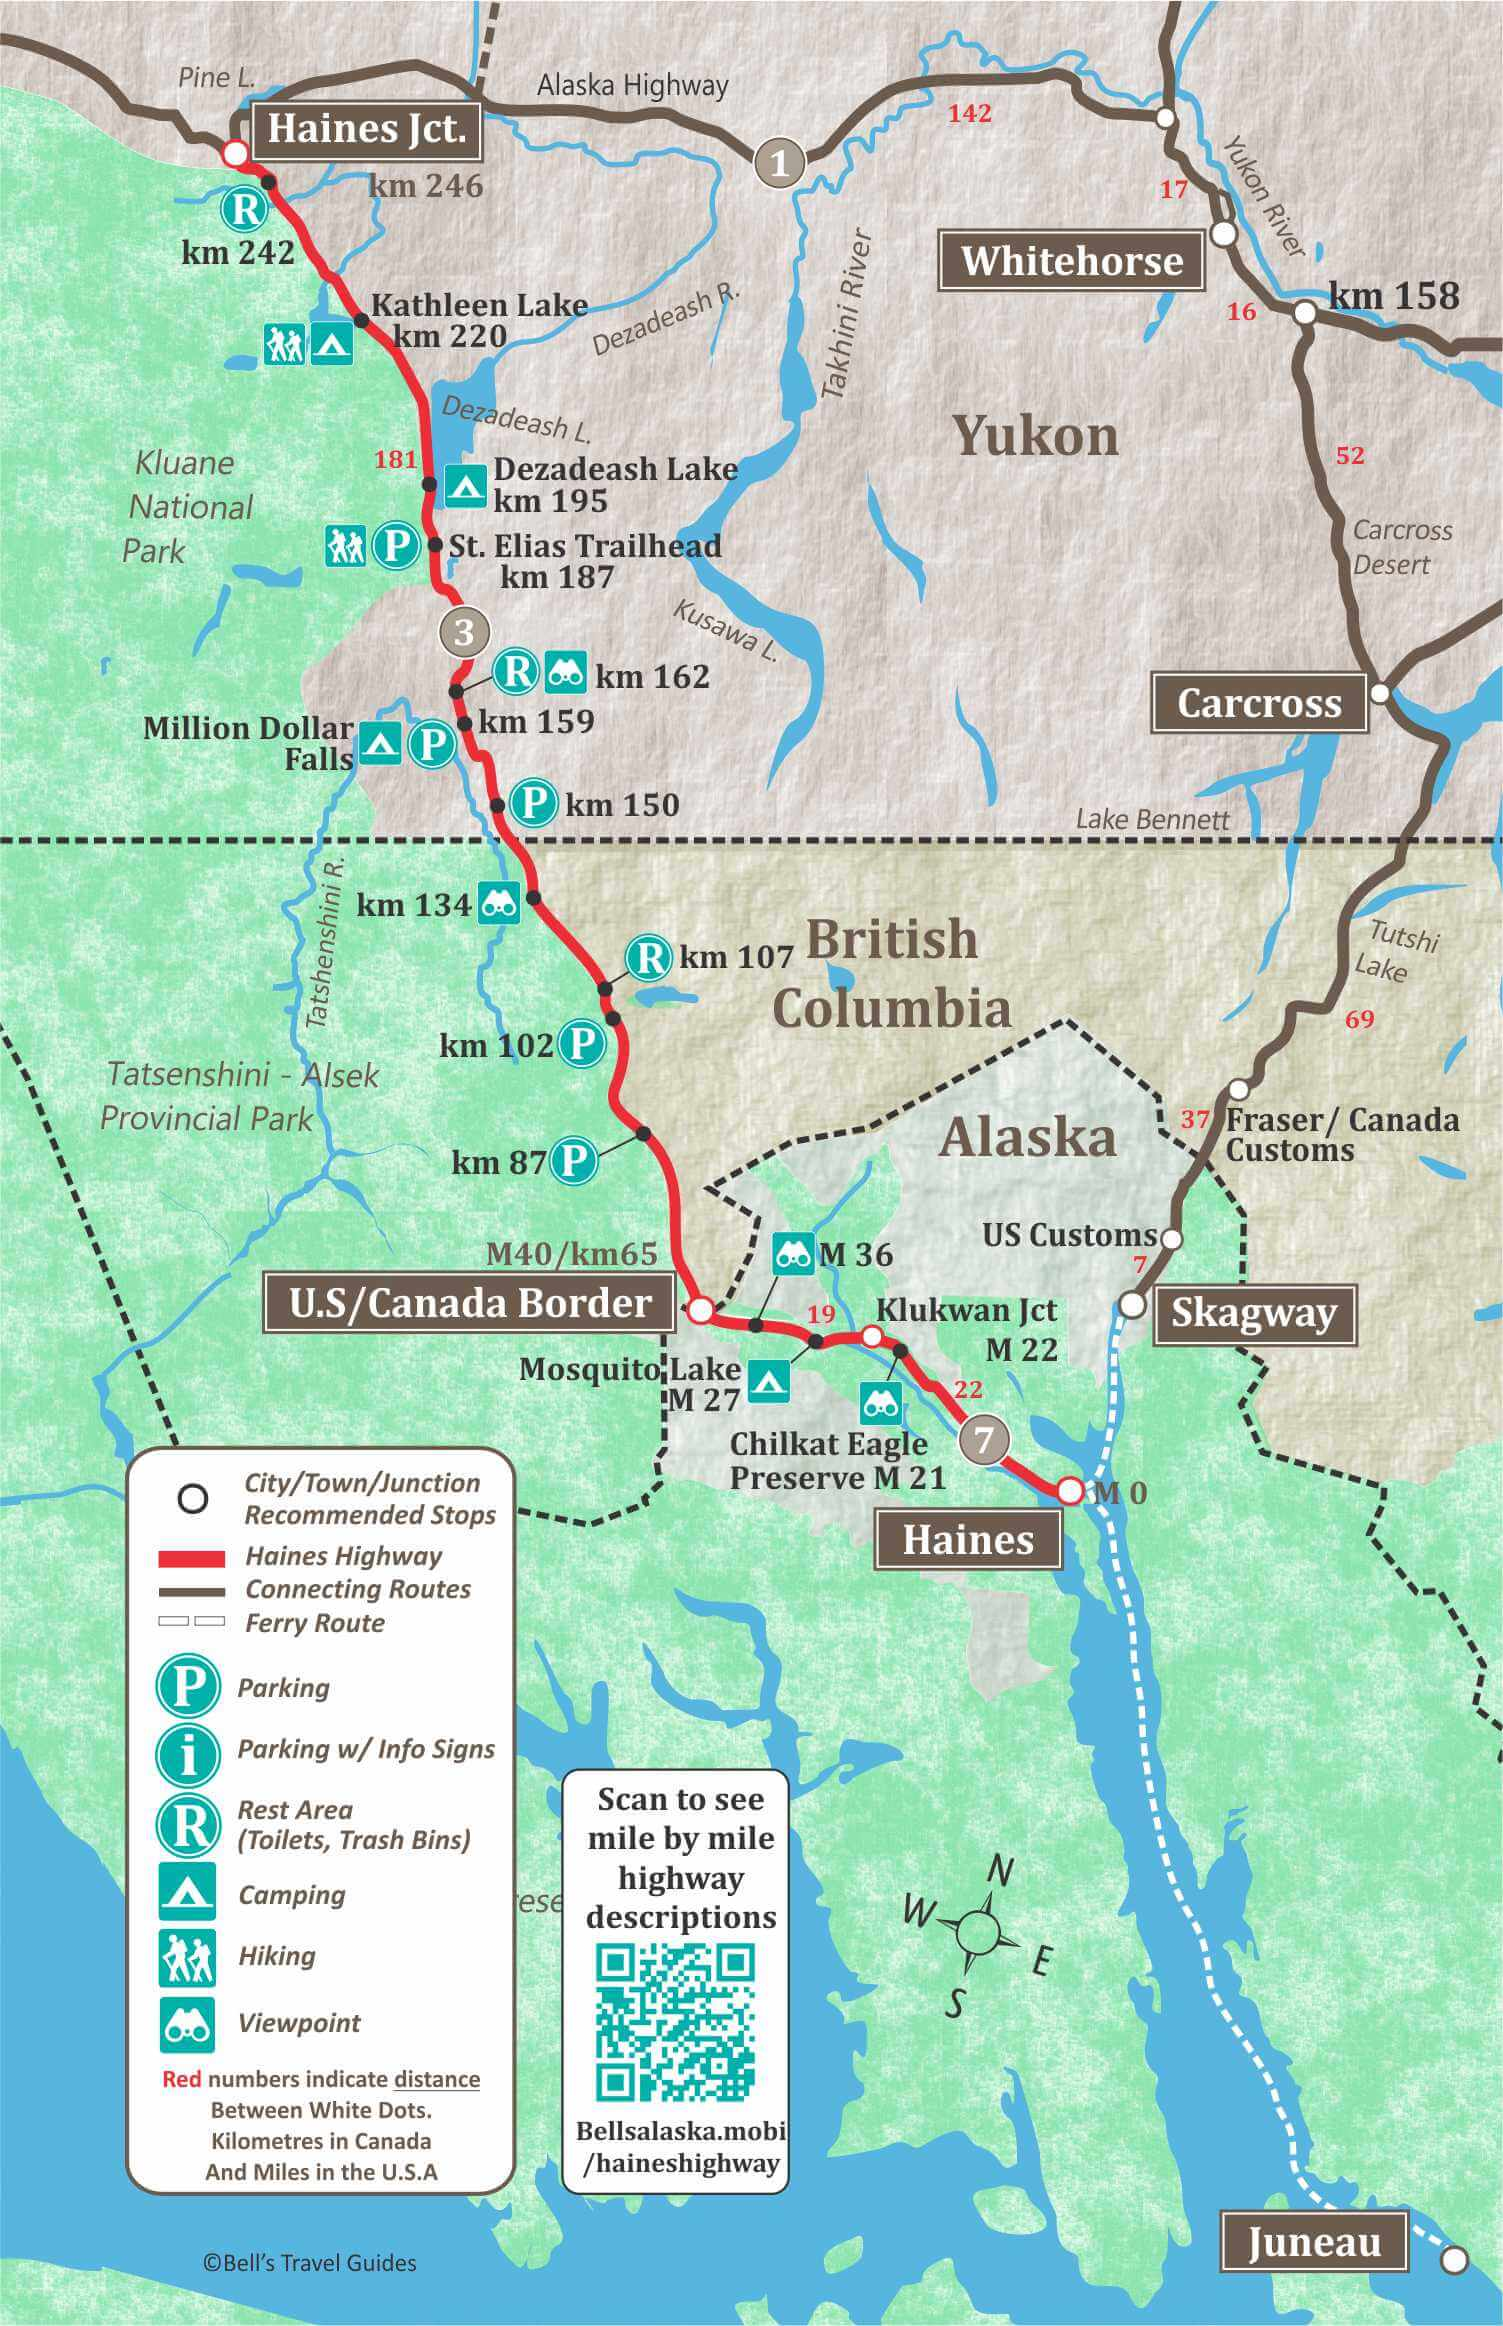 Alaska Maps The Best City Town And Highway Maps - Map-of-us-hwy-50